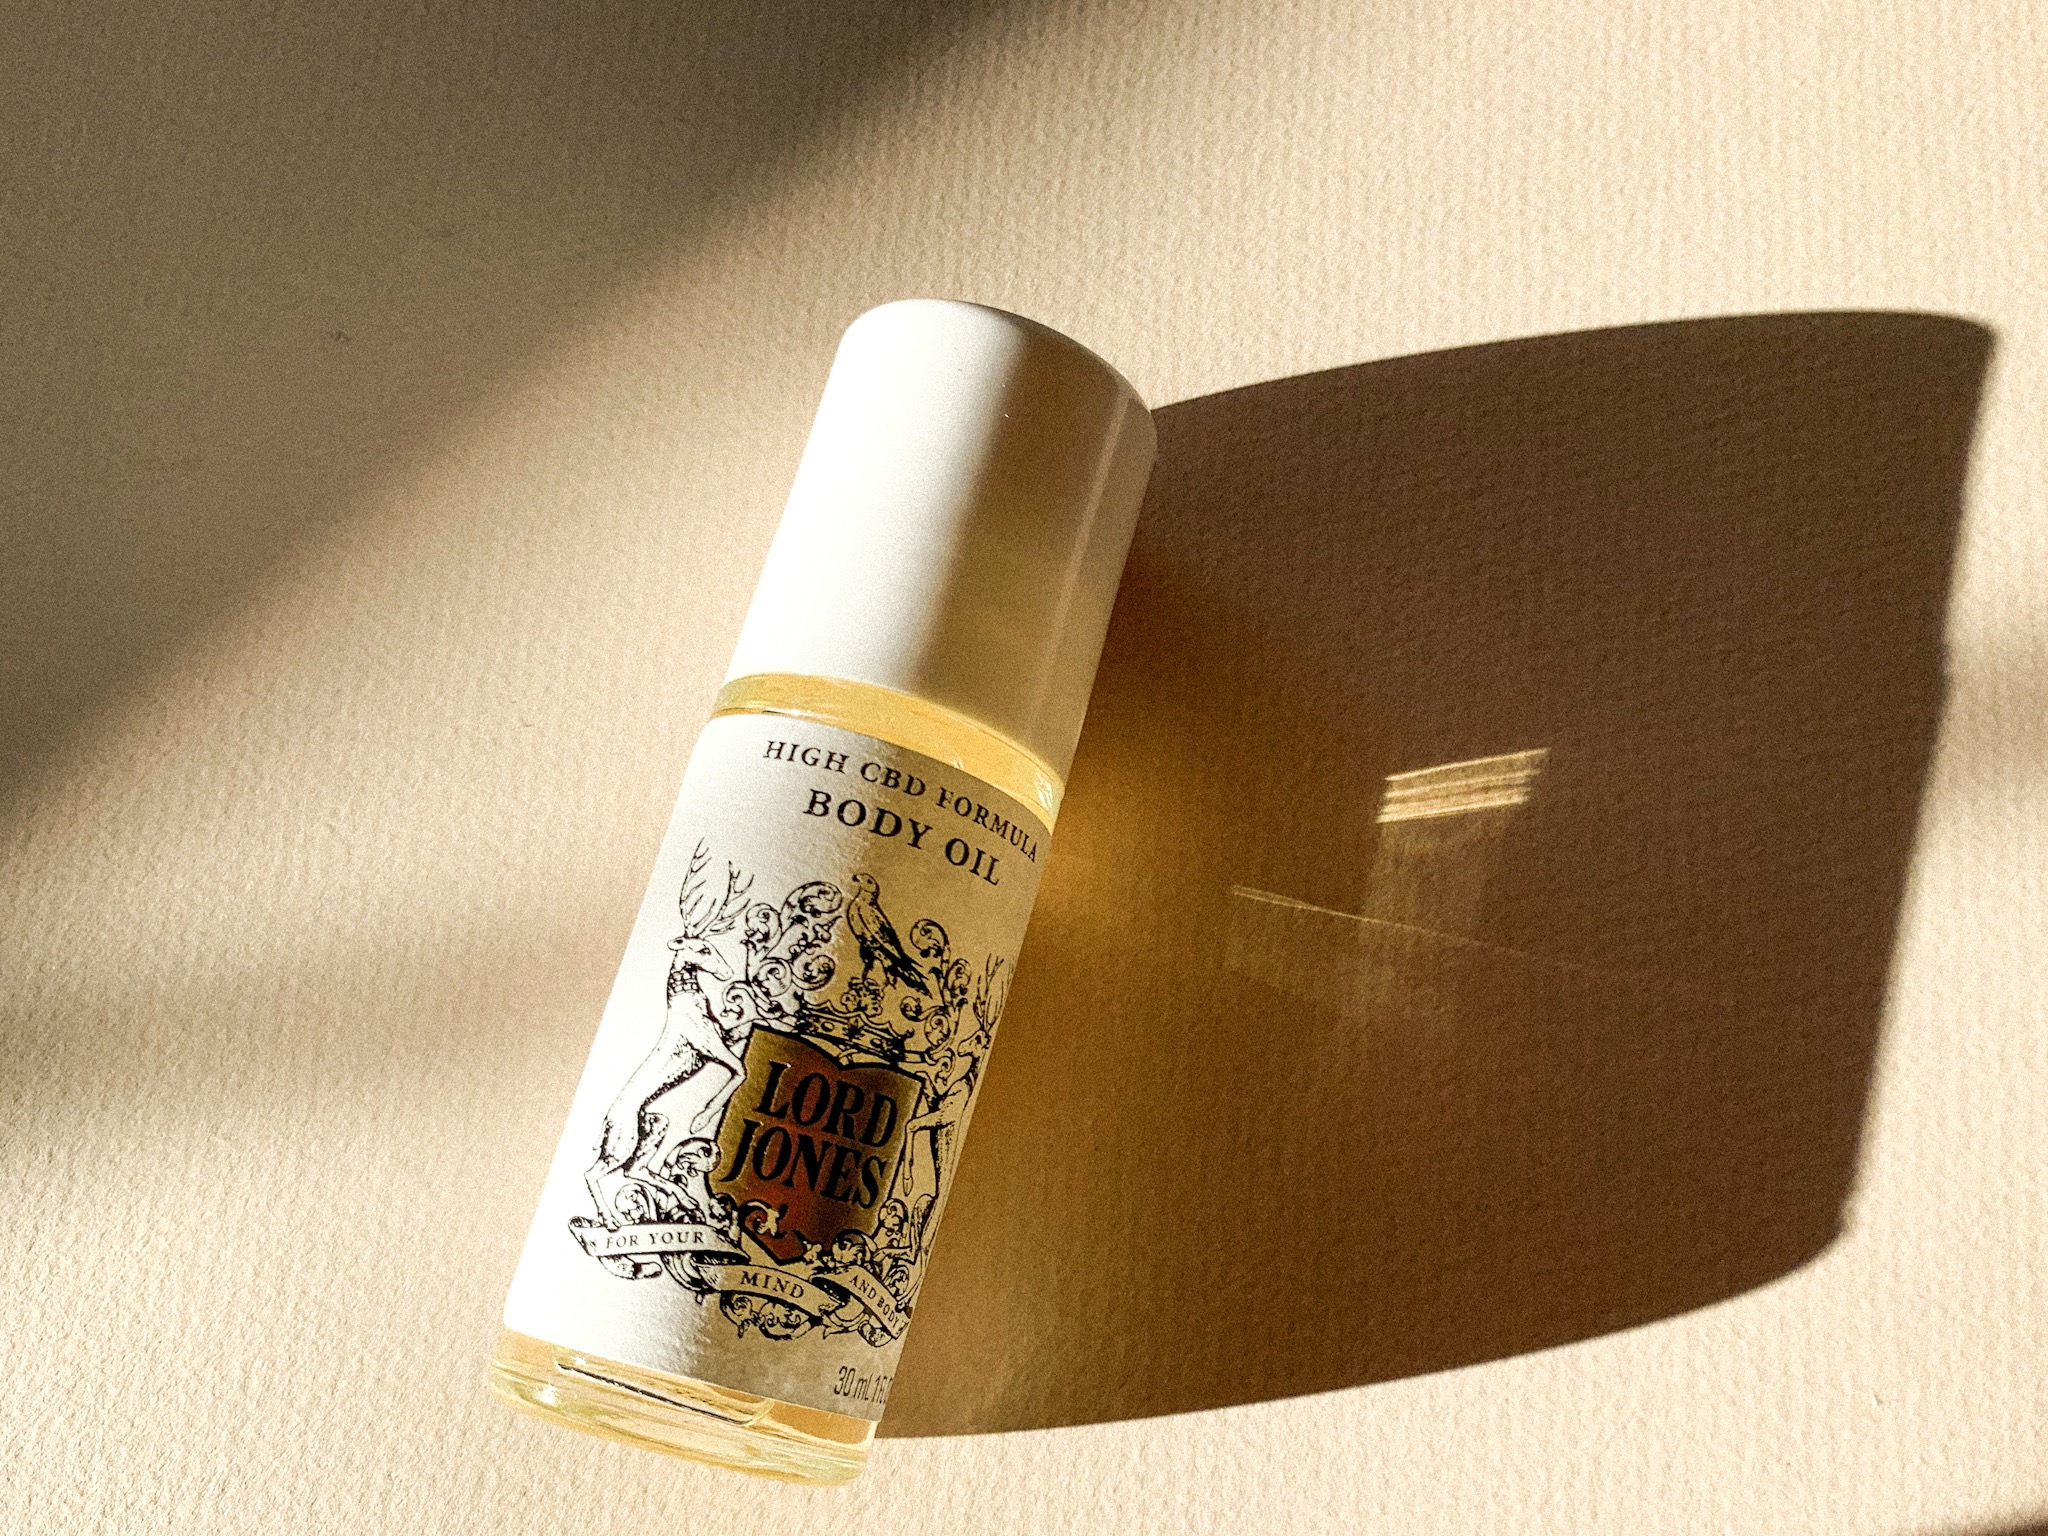 Lord Jones High CBD formula body oil